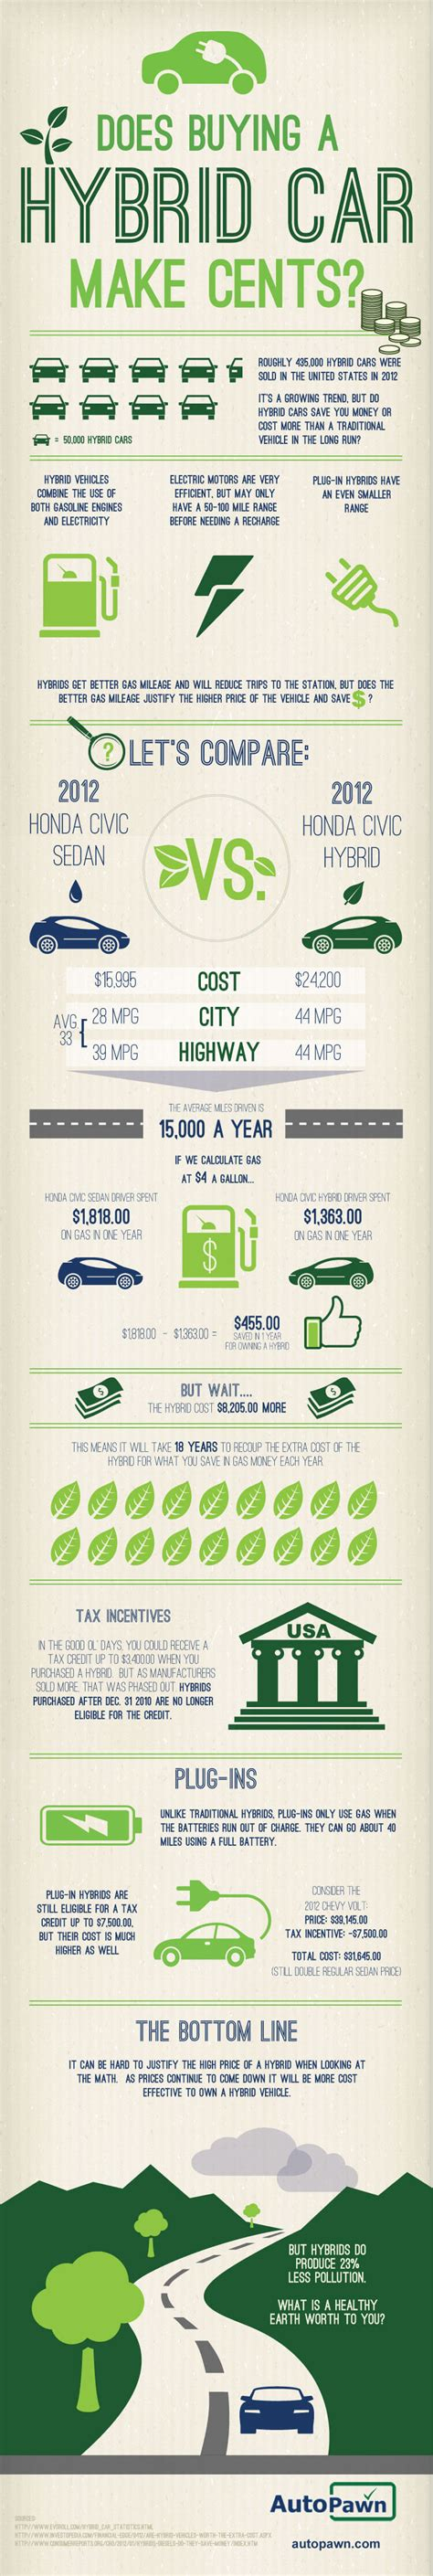 does buying a house make sense the cost of a hybrid car vs a traditional car infographic greener ideal